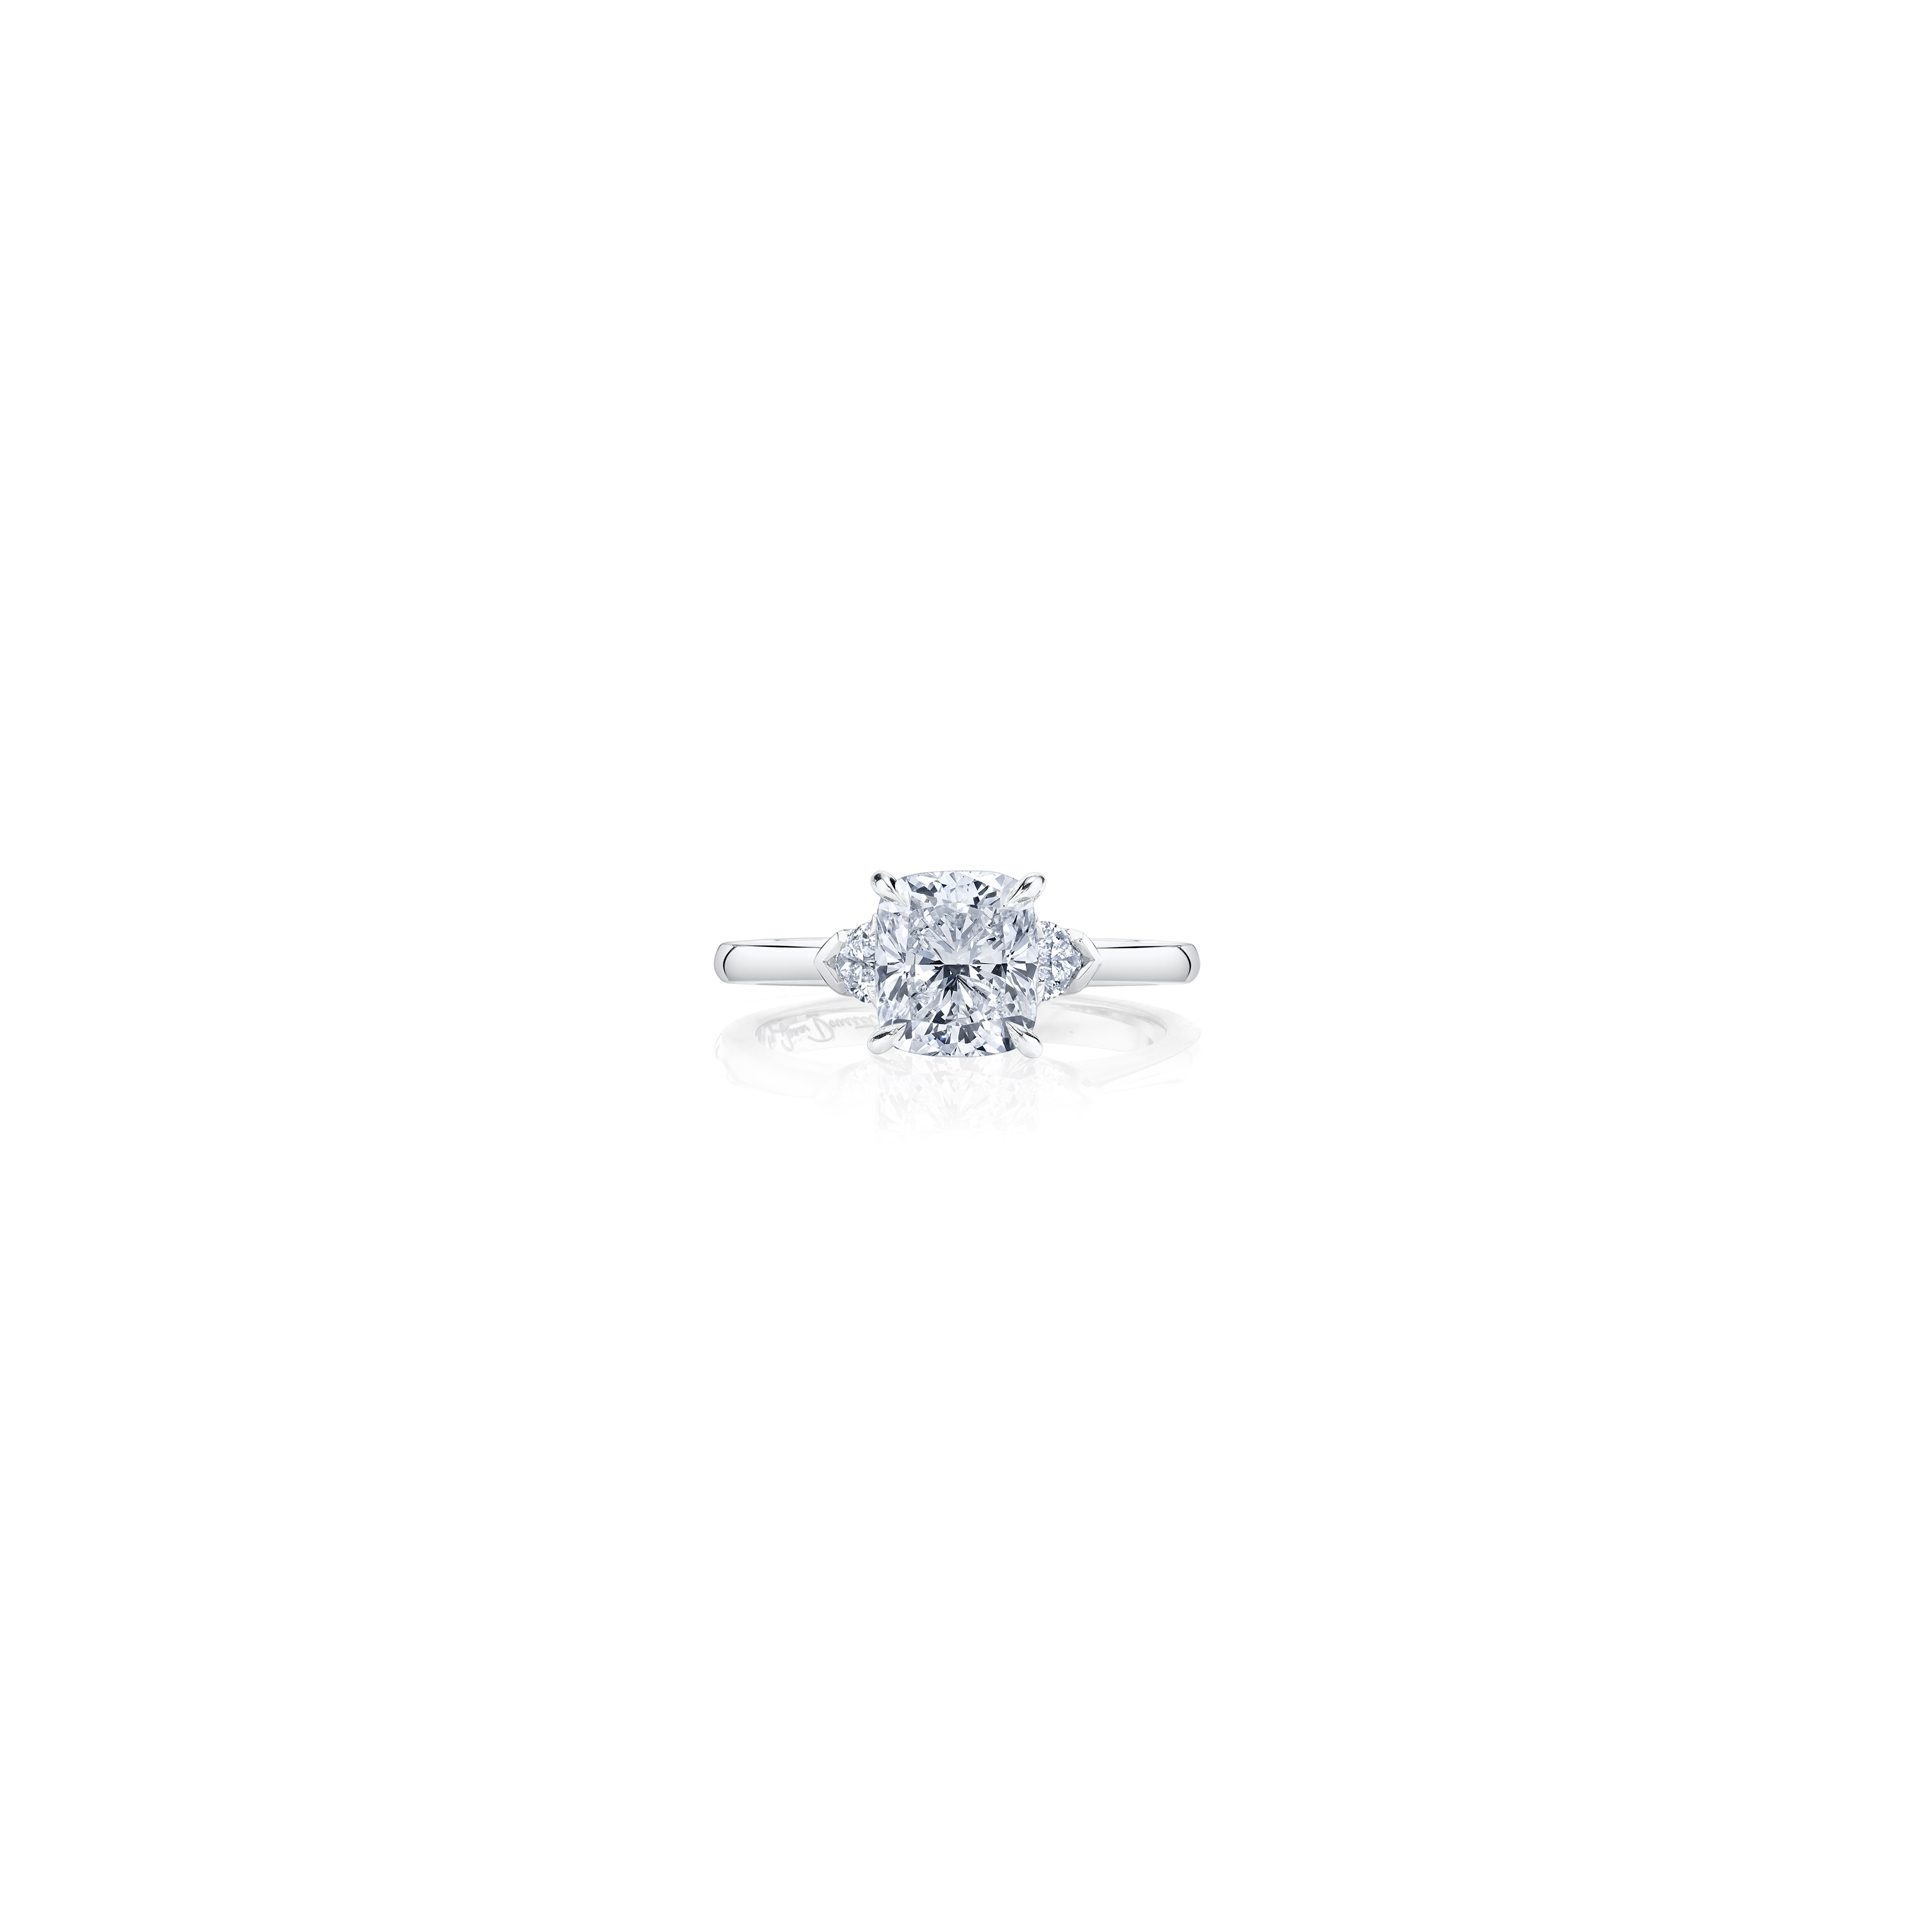 Claire Cushion Three Stone Engagement Ring with heart-shaped diamond side stones in 18k White Gold Front View by Oui by Jean Dousset